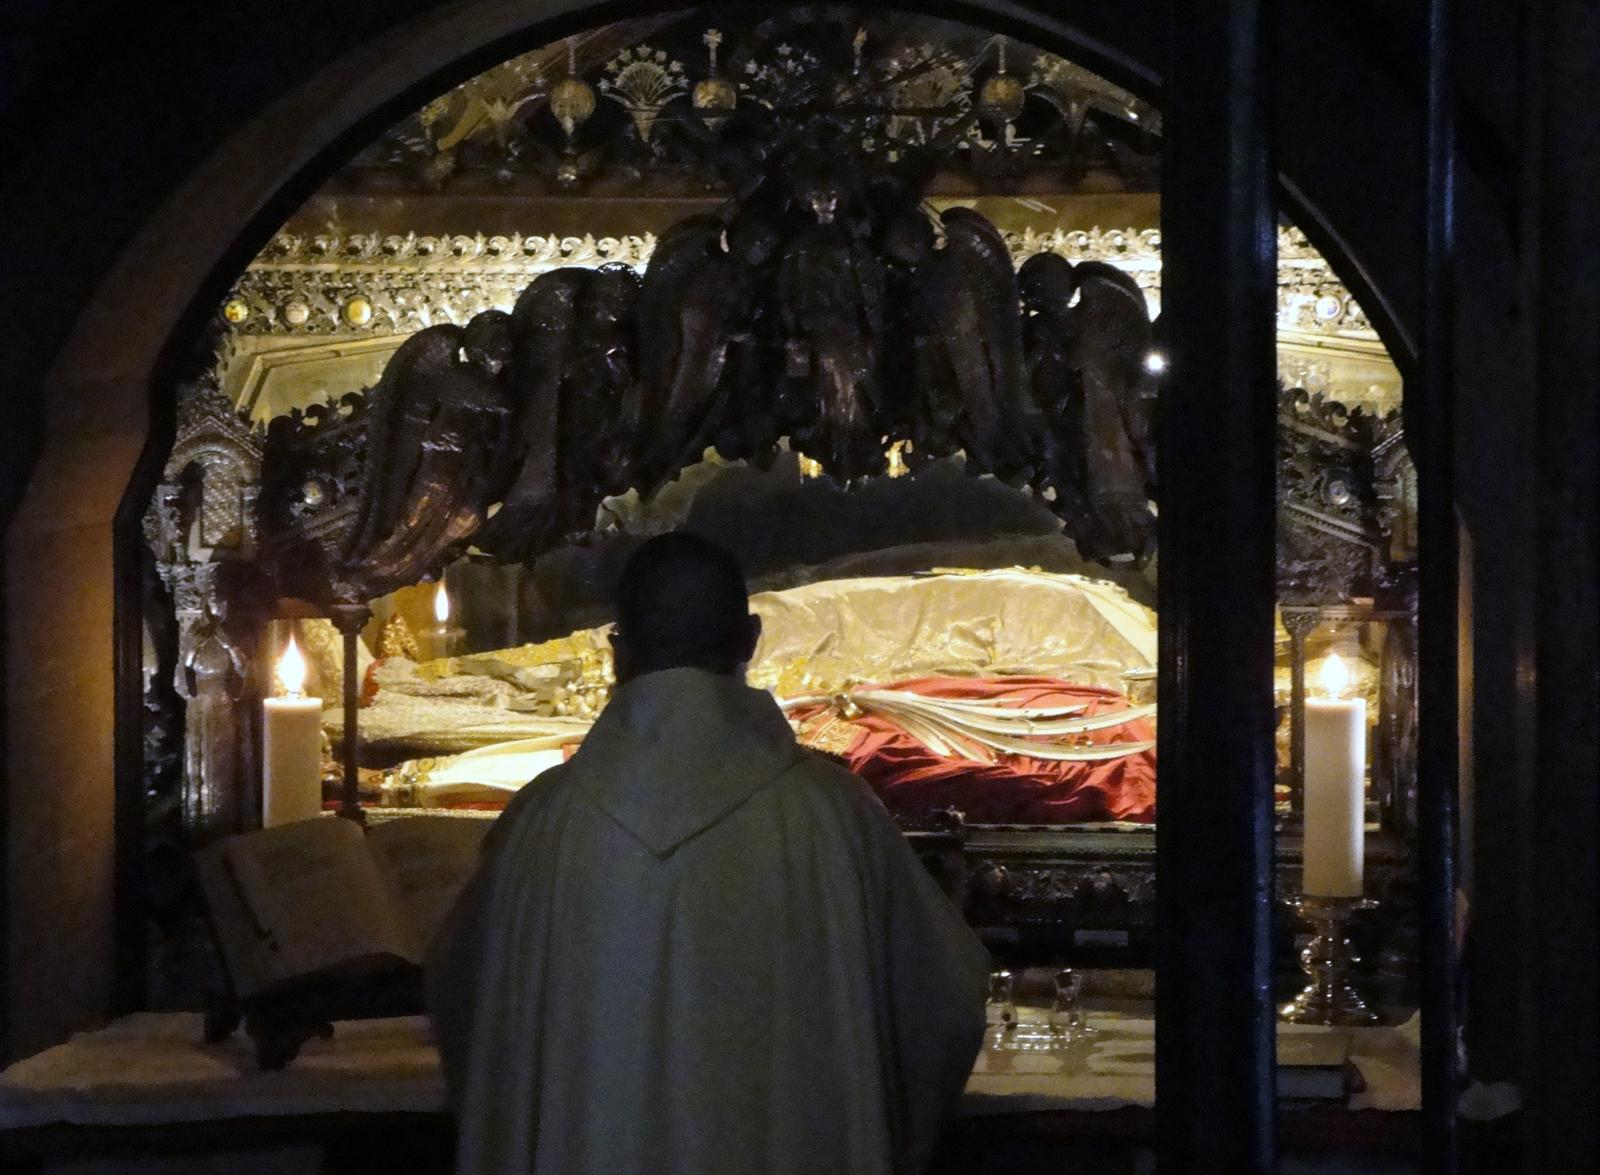 A priest prays Mass at the tomb of Sts. Ambrose Gervasius and Protasius.  Ambrose is laid out in the center (wearing white) with the two saint martyrs at either side.